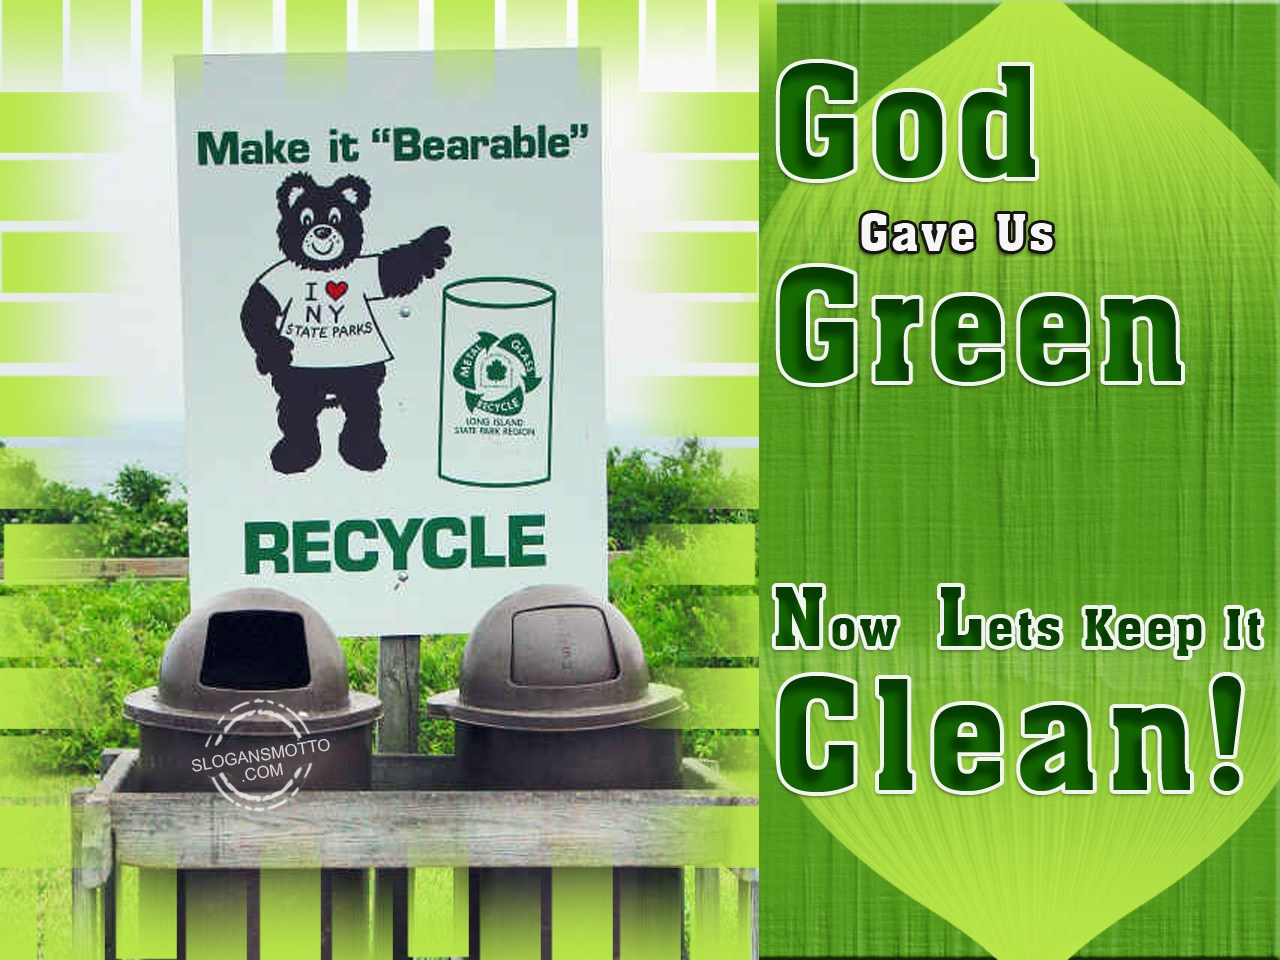 how to make our city clean and green Help your local schools conduct recycling drives and clean-up projects create a beautiful green space by planting trees and shrubs in an area in need of improvement ask local businesses to adopt-a-spot and take care of it.